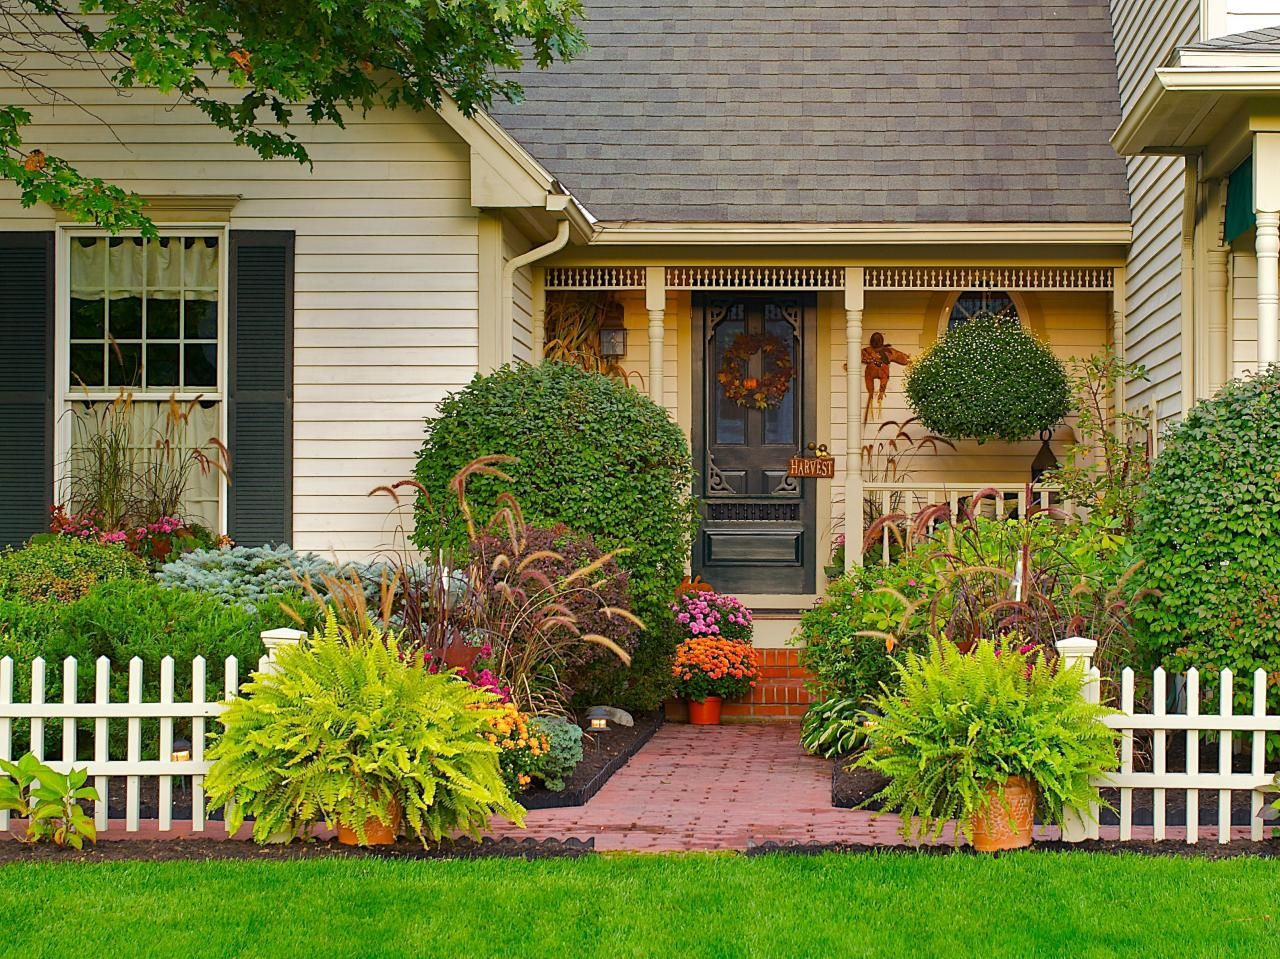 Tips For Creating A Gorgeous Entryway Garden Landscaping Ideas And Hardscape Design Hgtv Small Front Yard Landscaping Front Yard Design Front Yard